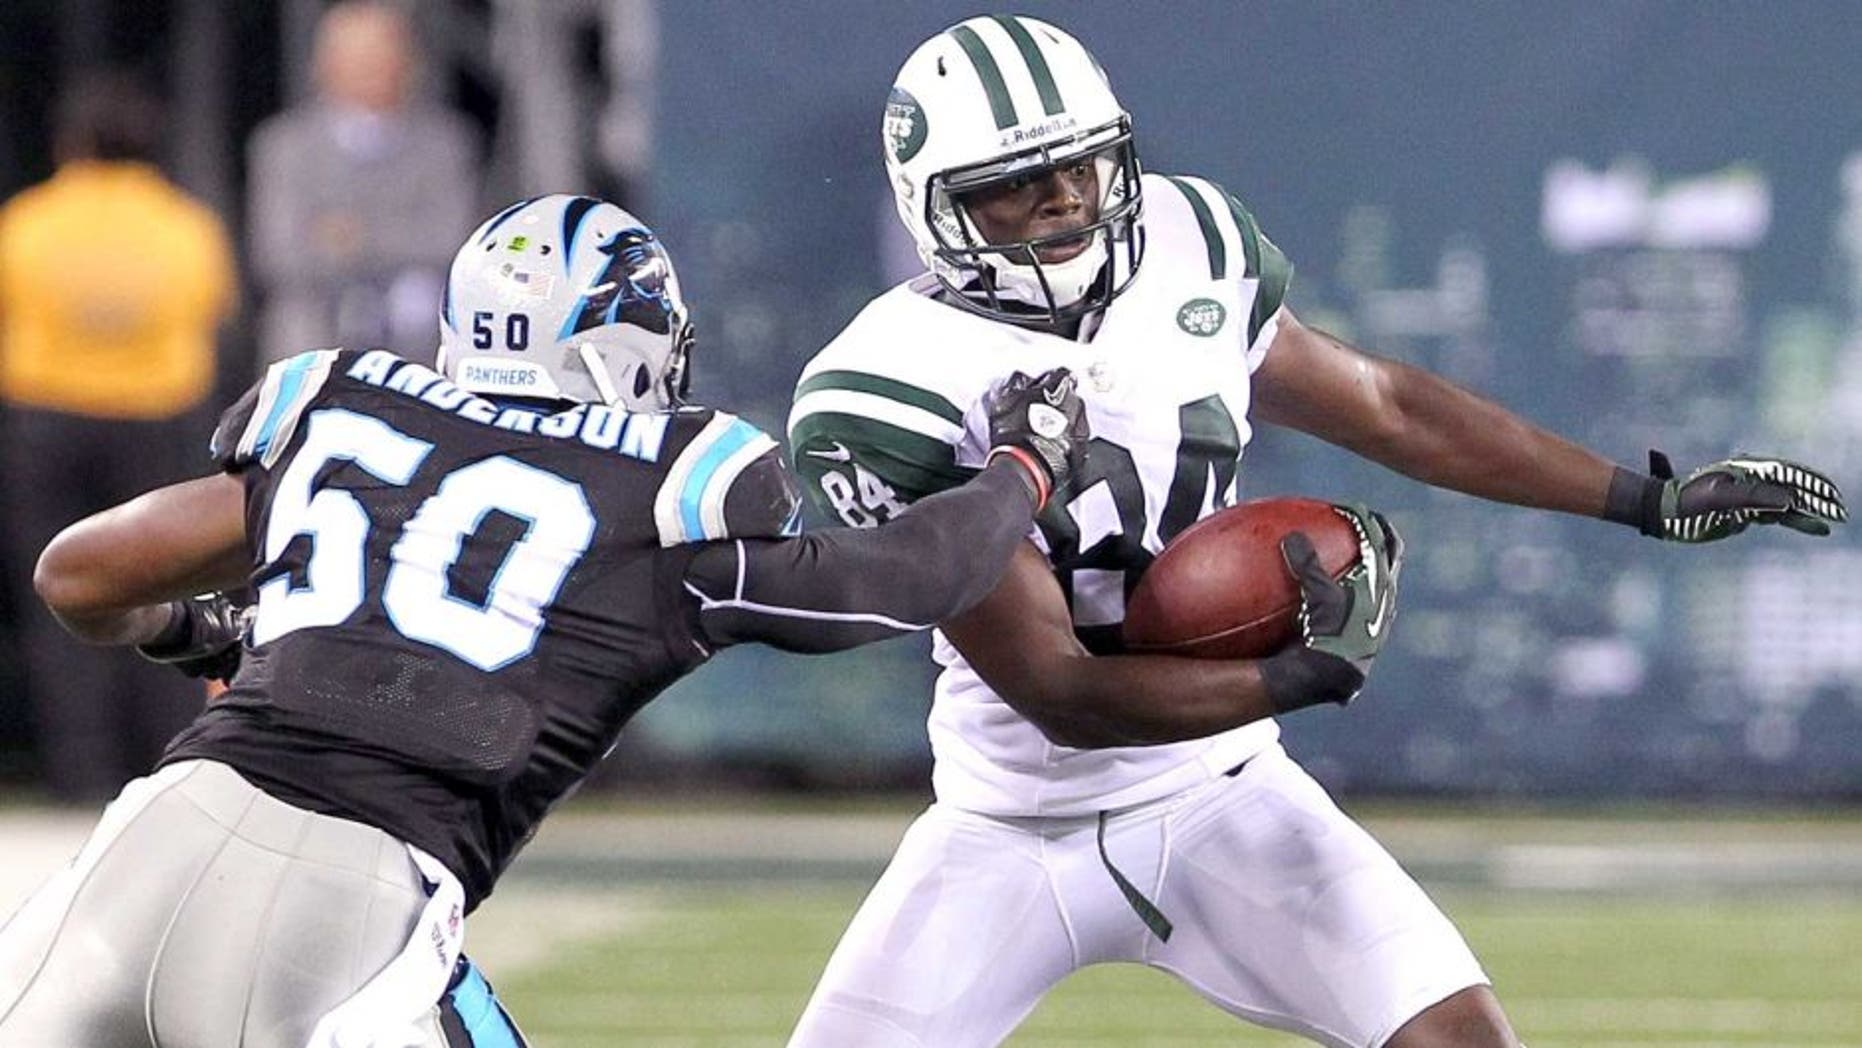 Aug 26, 2012; East Rutherford, NJ, USA; New York Jets wide receiver Stephen Hill (84) tries to avoid Carolina Panthers linebacker James Anderson (50) during the second half at MetLife Stadium. The Panthers defeated the Jets 17-12. Mandatory Credit: Ed Mulholland-USA TODAY Sports